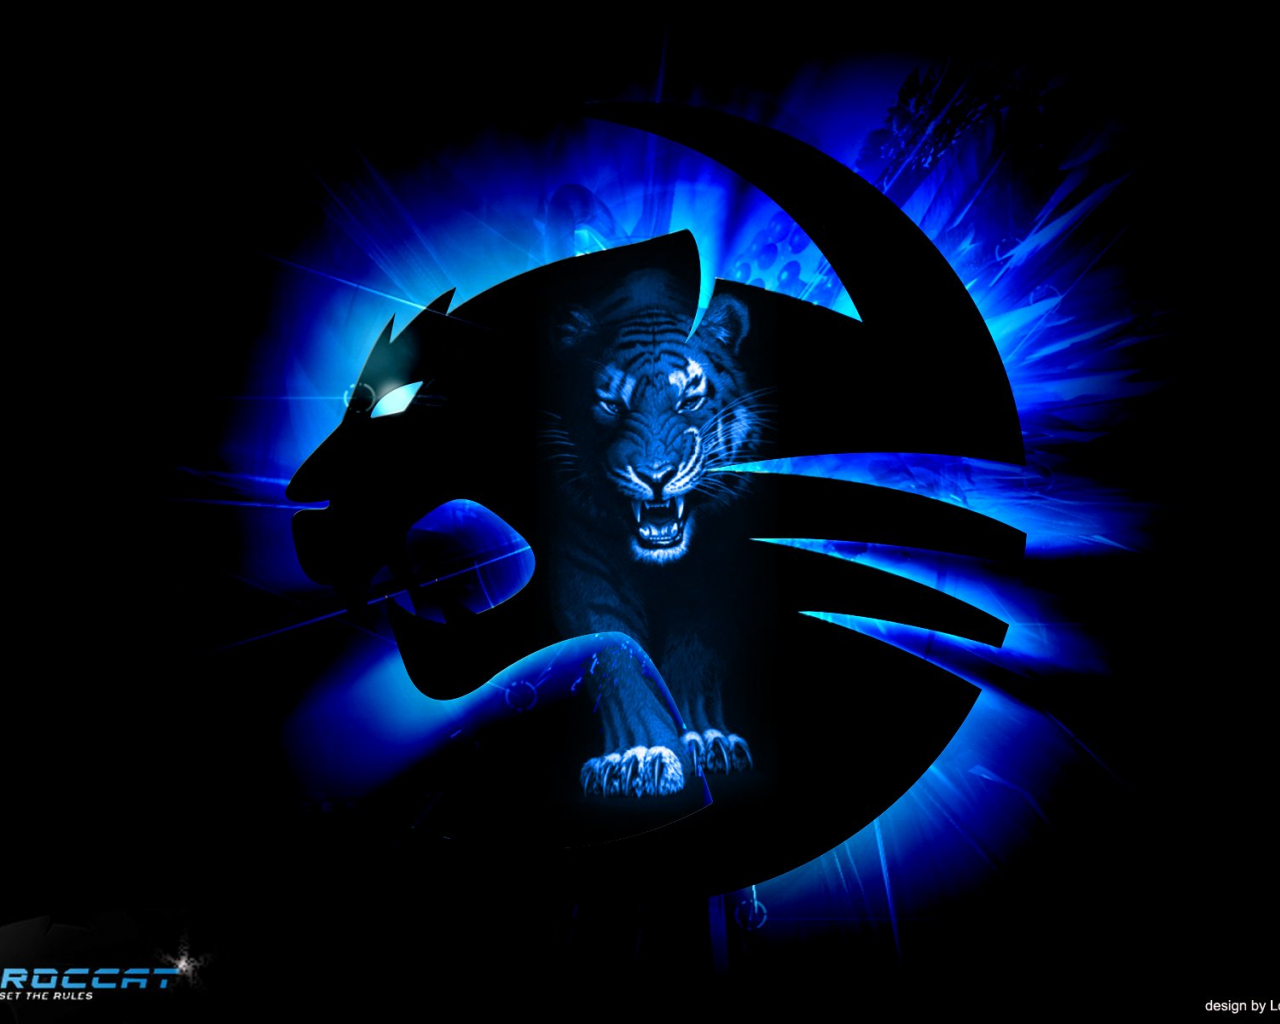 Free Download Roccat Gaming Computer Wallpaper Background 1680x1200 For Your Desktop Mobile Tablet Explore 46 Blue Gaming Wallpaper Blue Desktop Wallpaper Dark Blue Wallpaper Blue Color Background Wallpaper